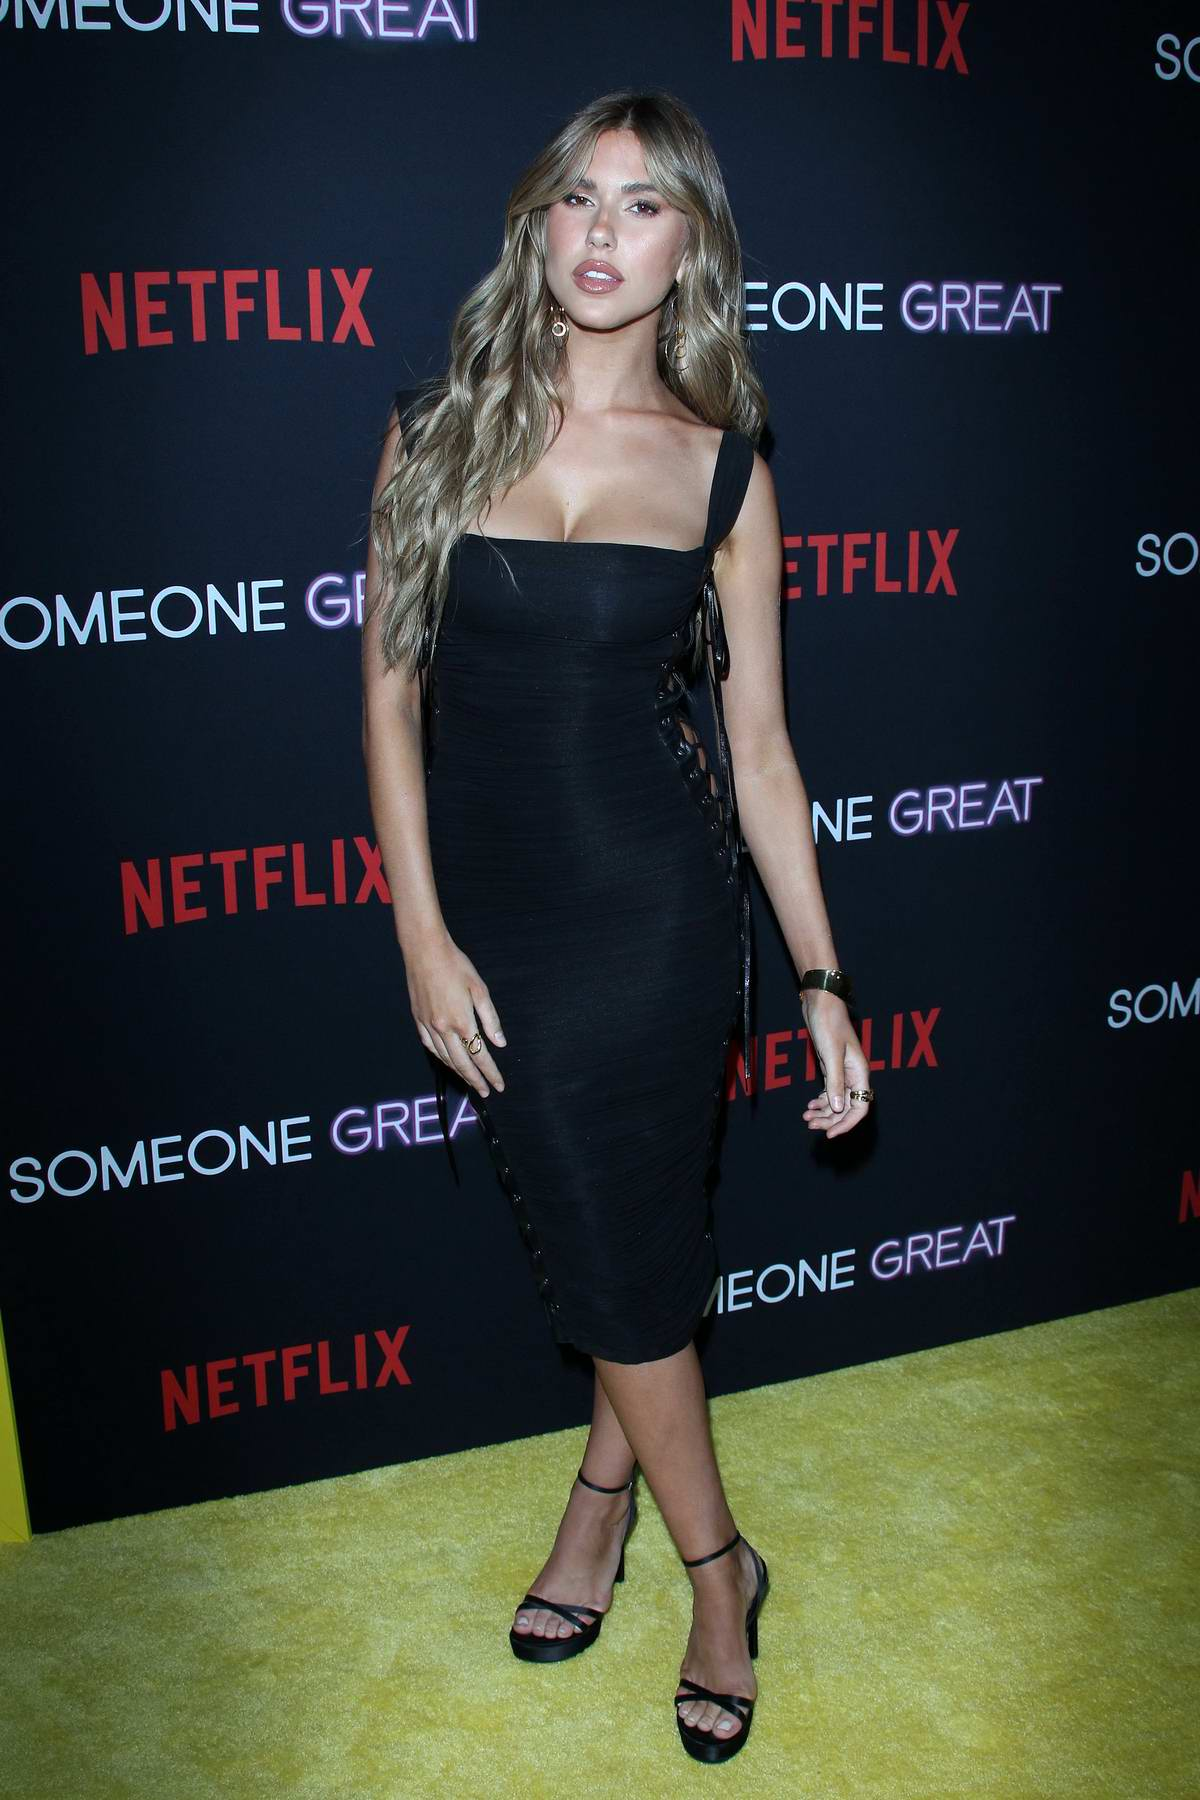 Kara Del Toro attends 'Someone Great' premiere at ArcLight Cinemas in Los Angeles